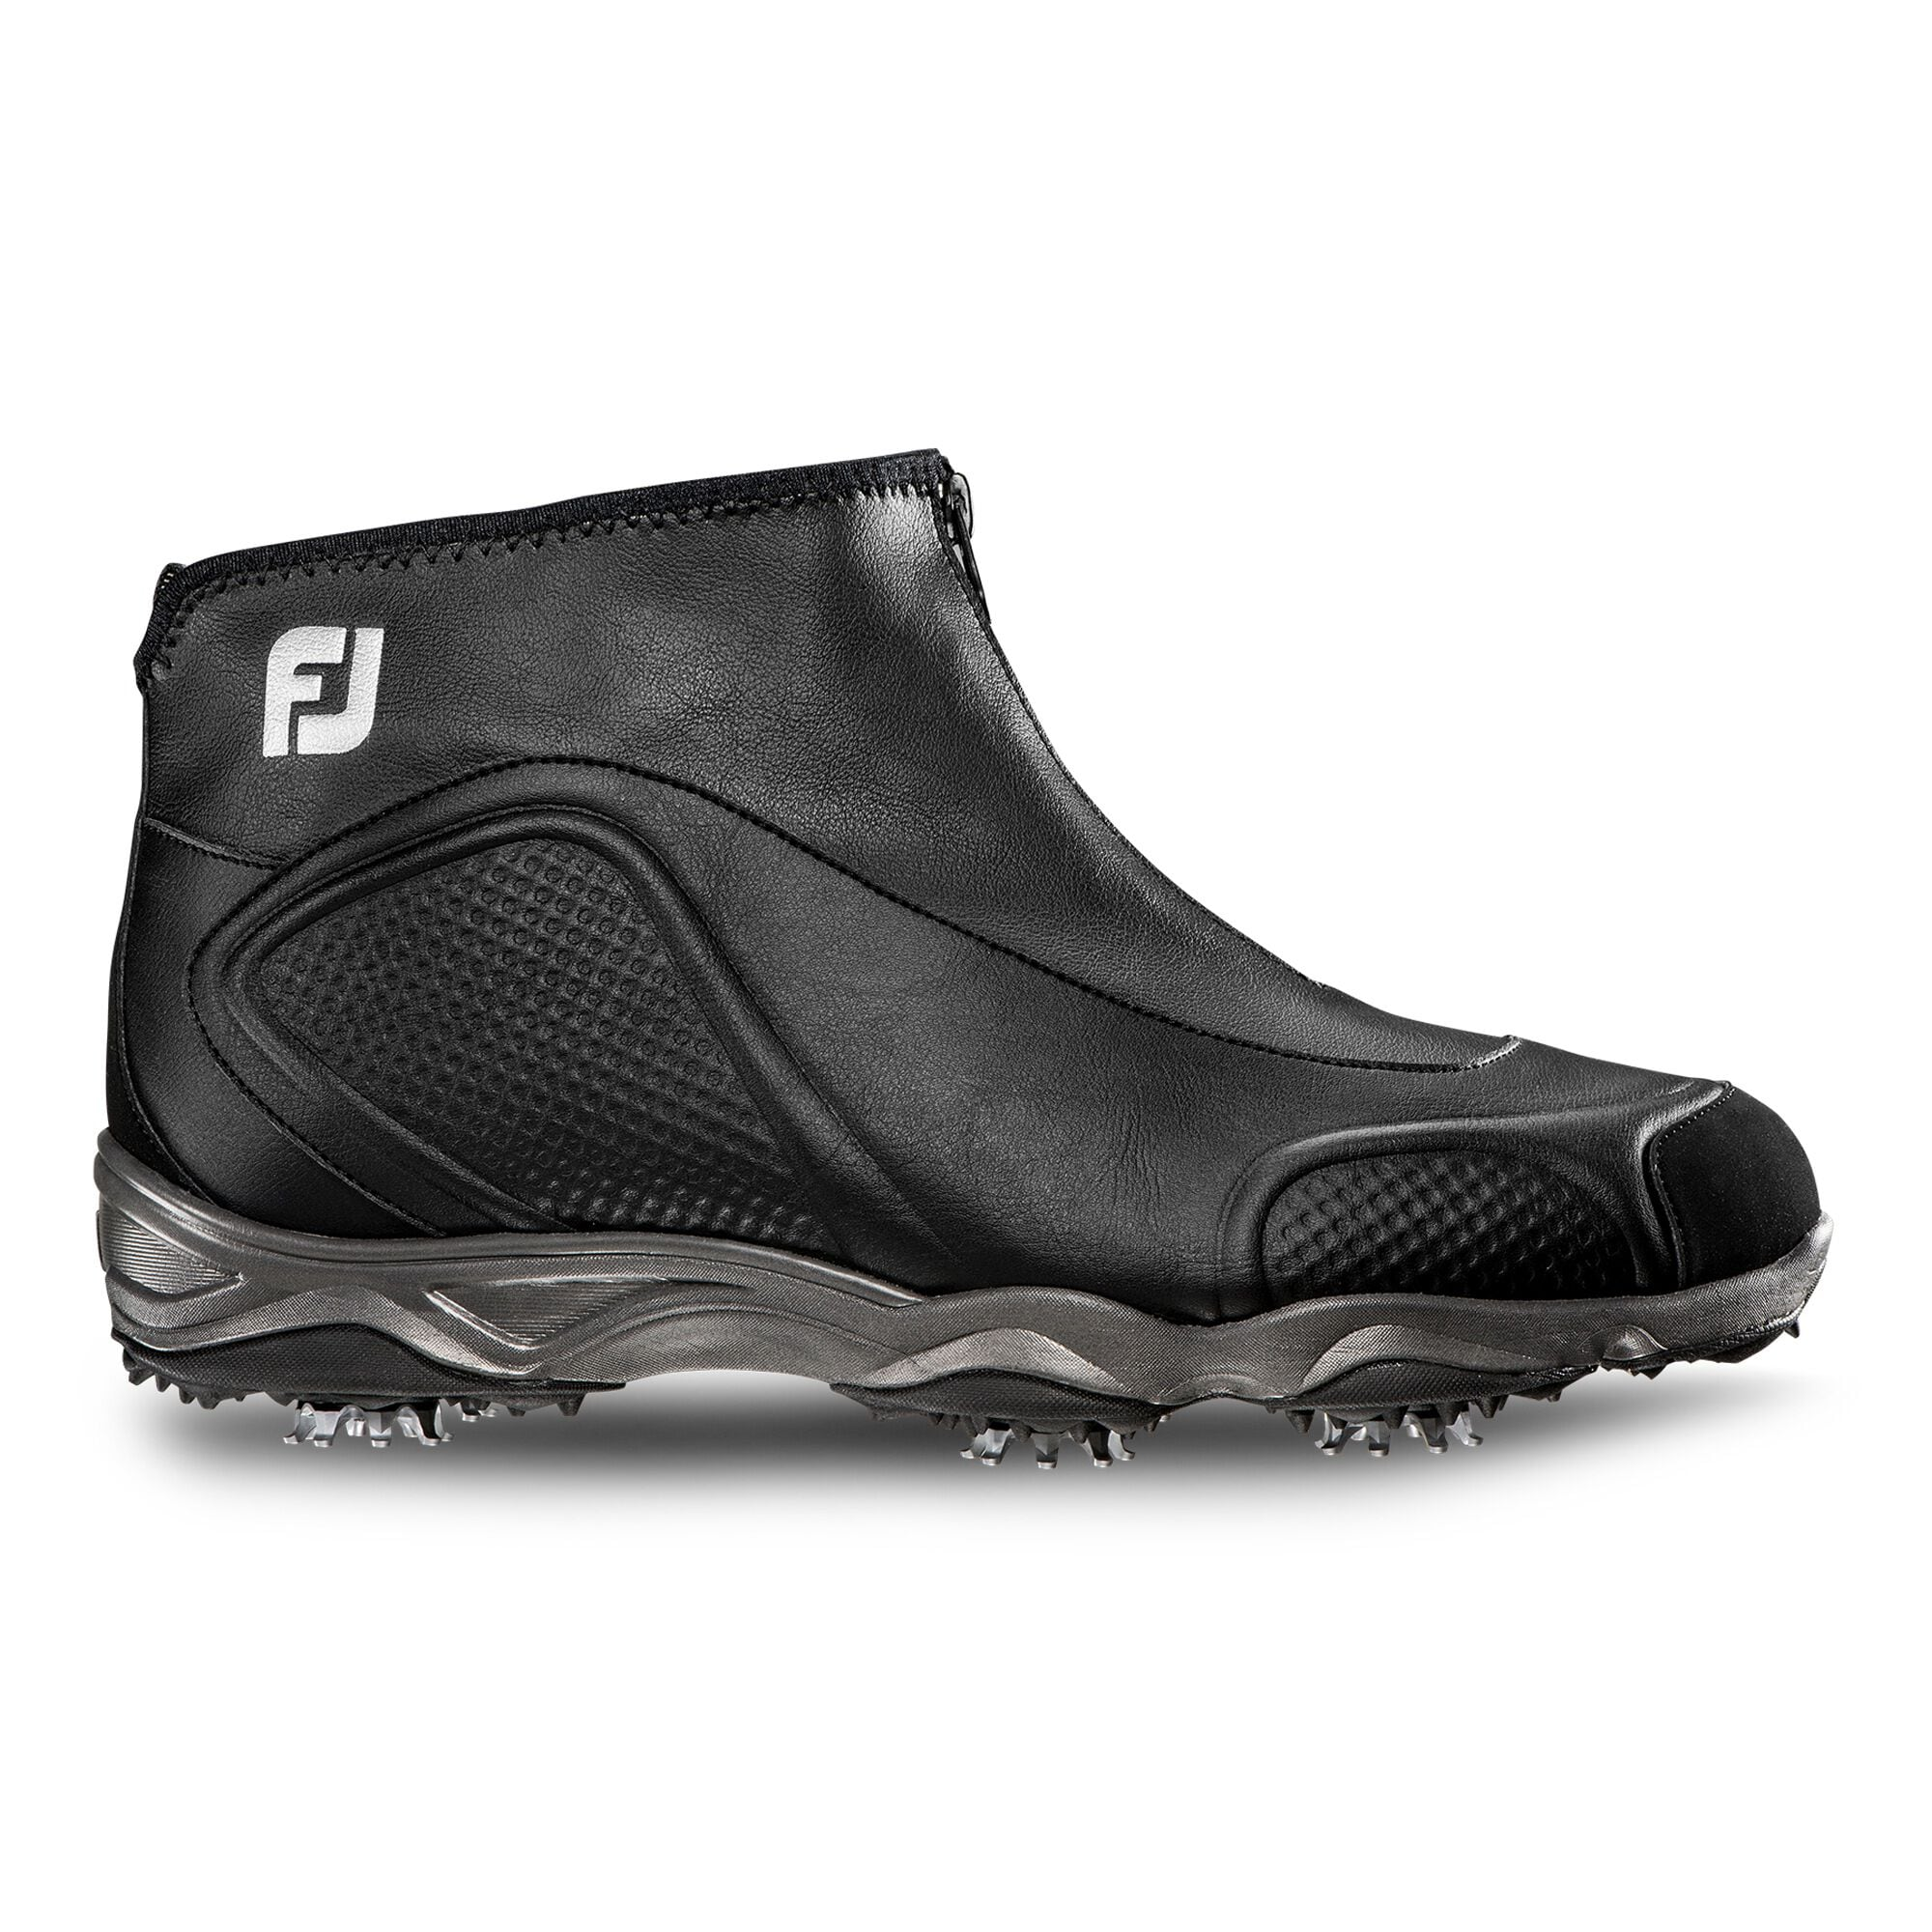 Best Winter Golf Shoes for Cold Weather